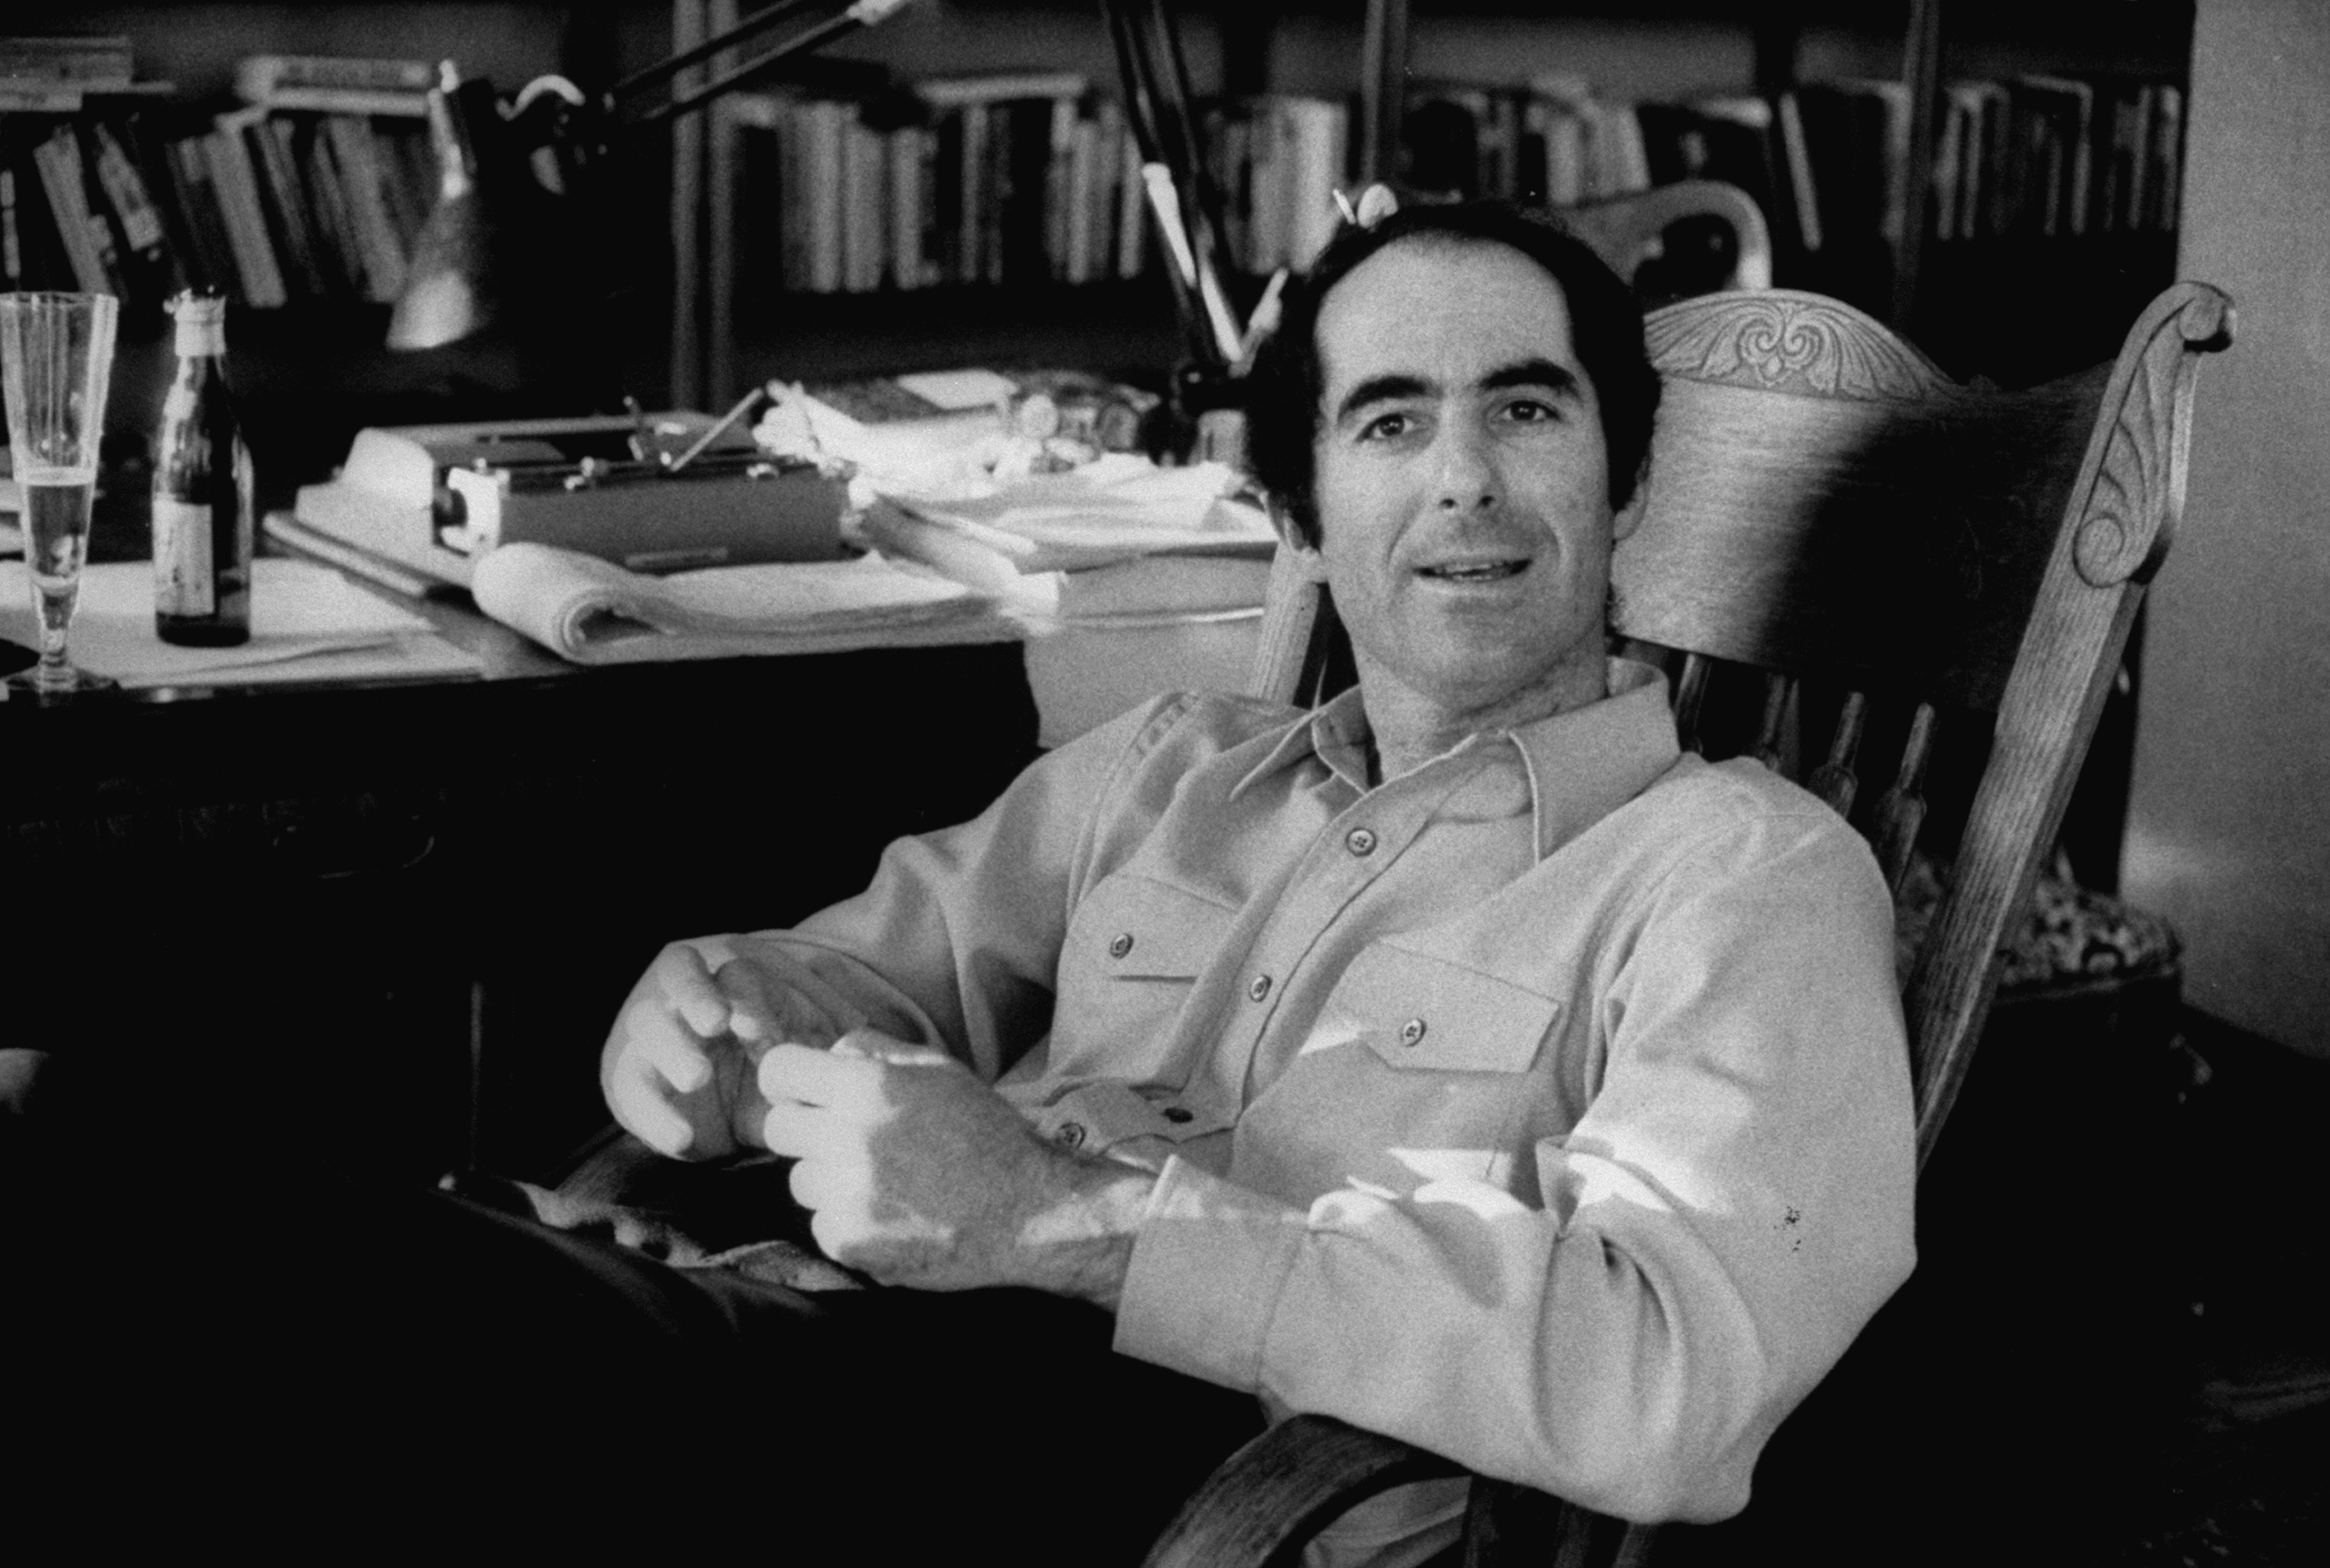 Pulitizer Prize- and National Book Award-winning novelist Philip Roth drinking a glass of beer as he pauses during work on a man